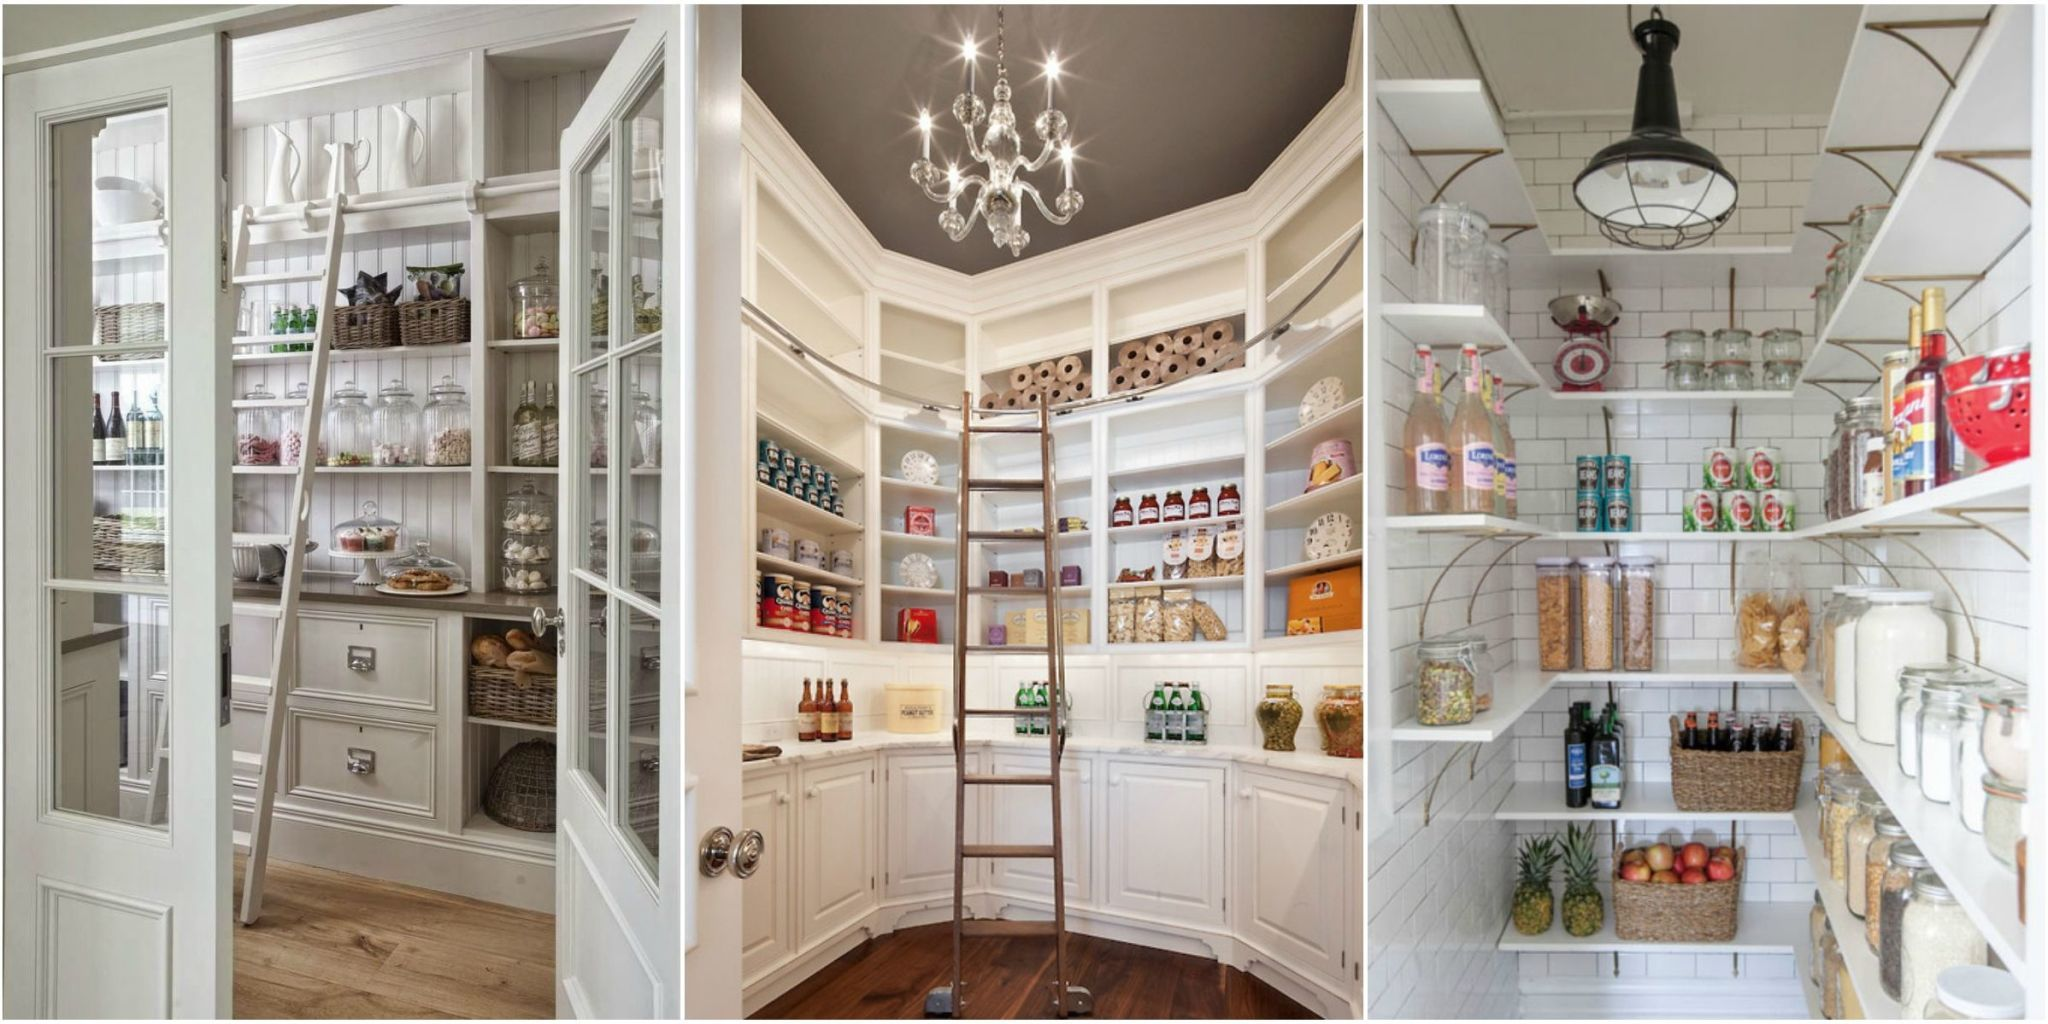 If We Learned Anything From Kourtney Ku0027s Swoon Worthy Pantry, Itu0027s That A  Well Organized Array Of Snacks And Treats Is Just One Of The Many Perks Of  How The ...